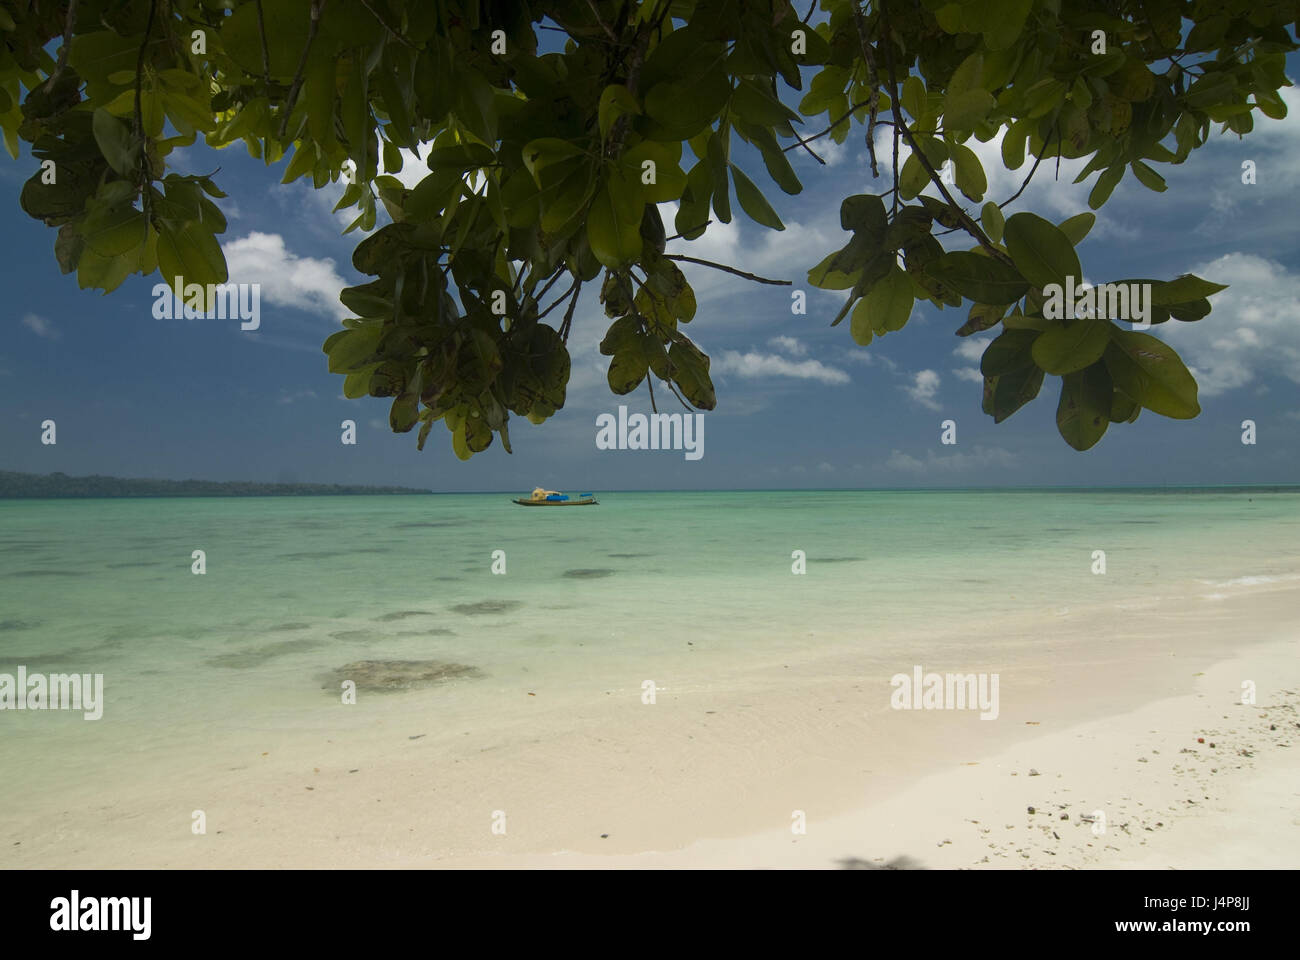 Sandy beach, turquoise-blue, Indian ocean, Havelock Insel, Andamanen, India, - Stock Image